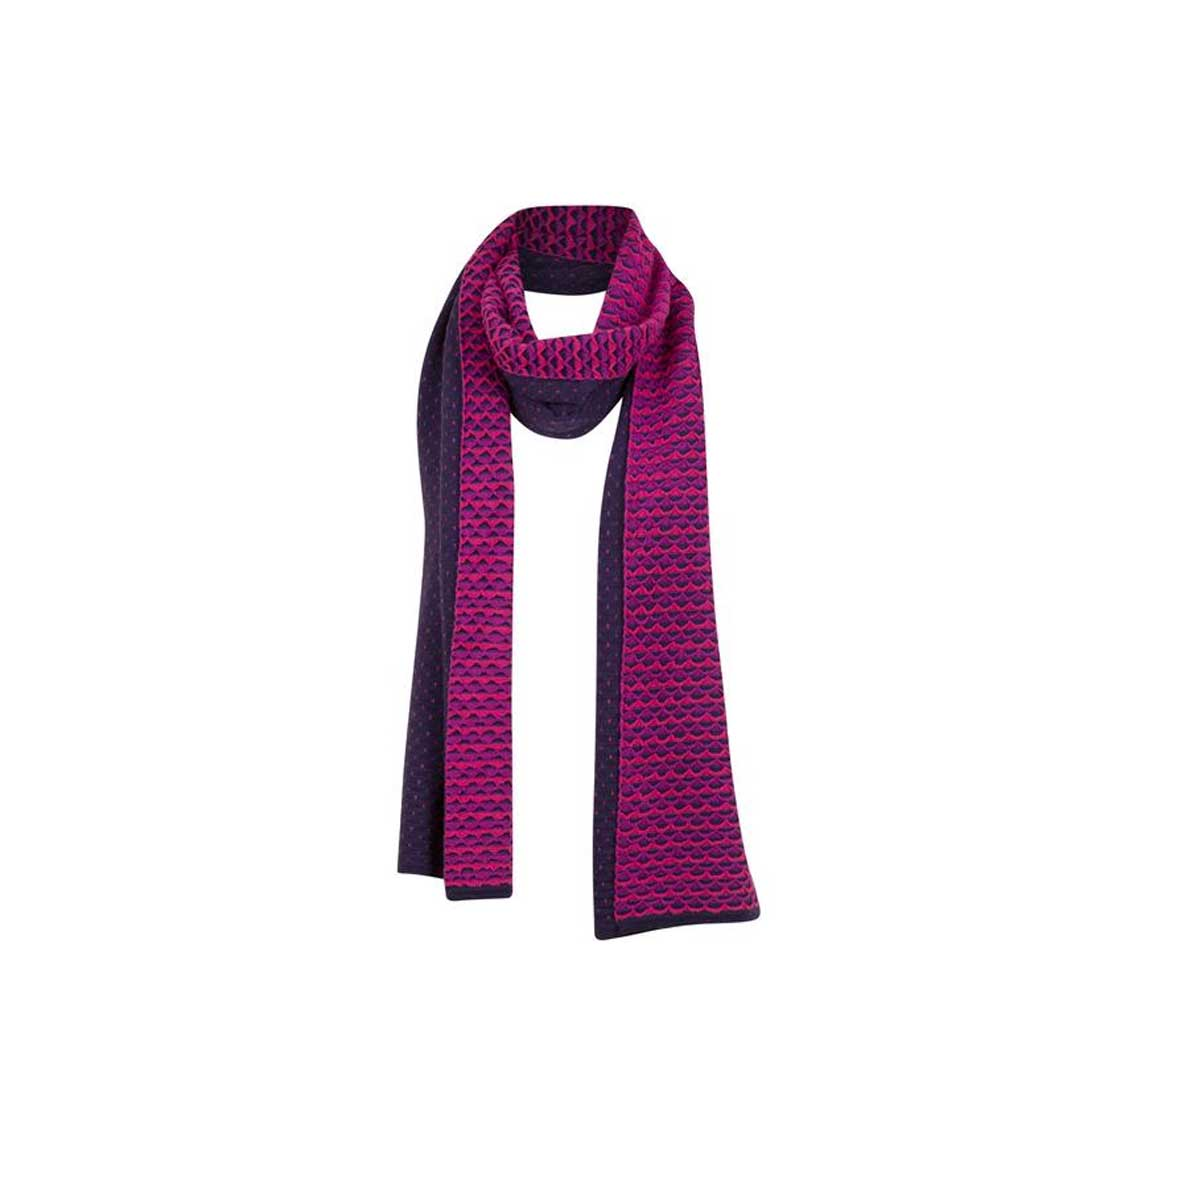 Krimson Klover Women's Ripple Scarf in Blackberry